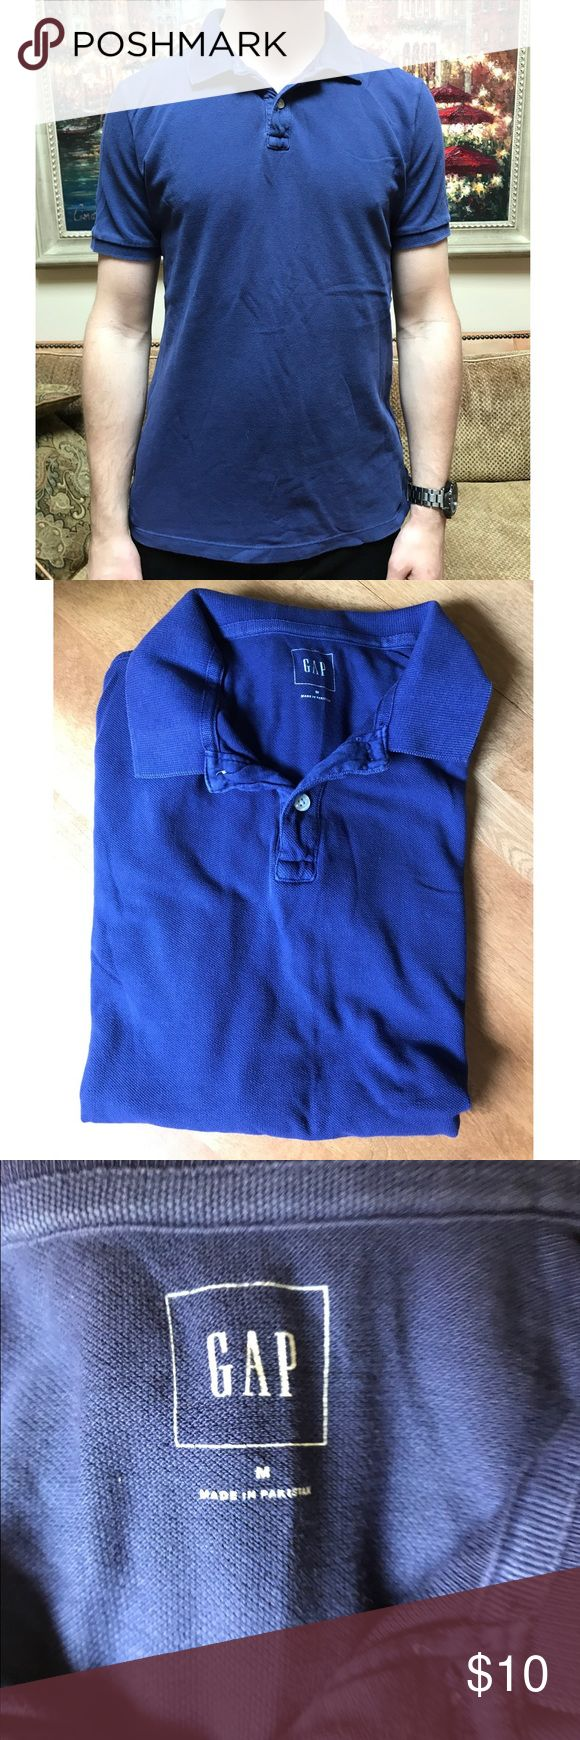 Men's Blue Gap Polo Washed once but never worn! Dark bluish purple color. Size medium! Fits true to size. GAP Shirts Polos